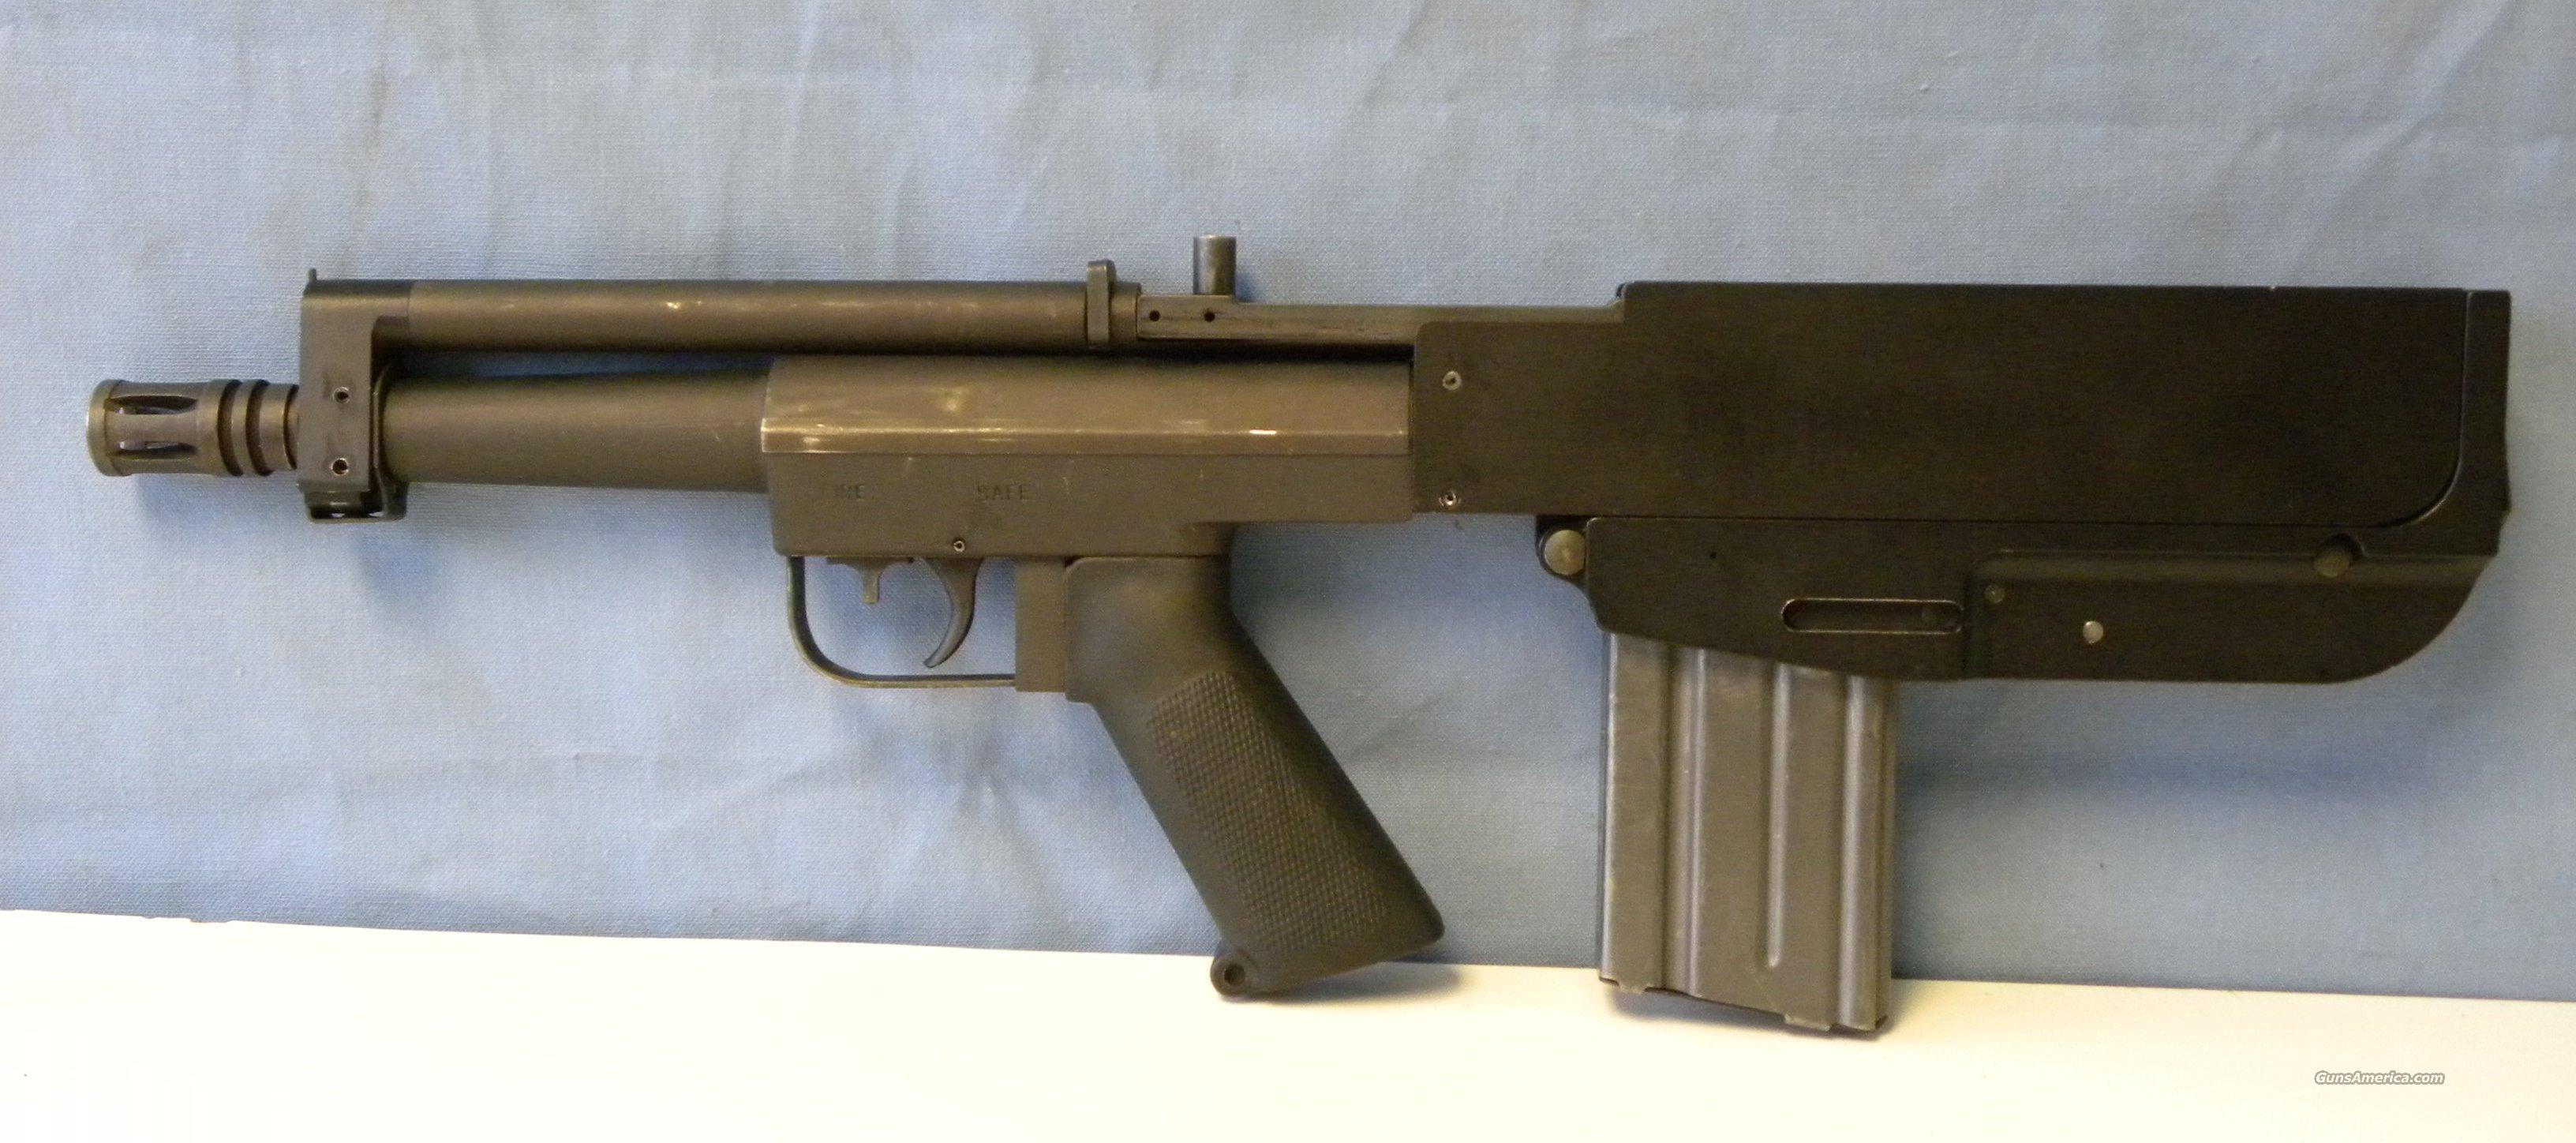 Gwinn Firearms Bushmaster Pistol 5.56 NATO For Sale